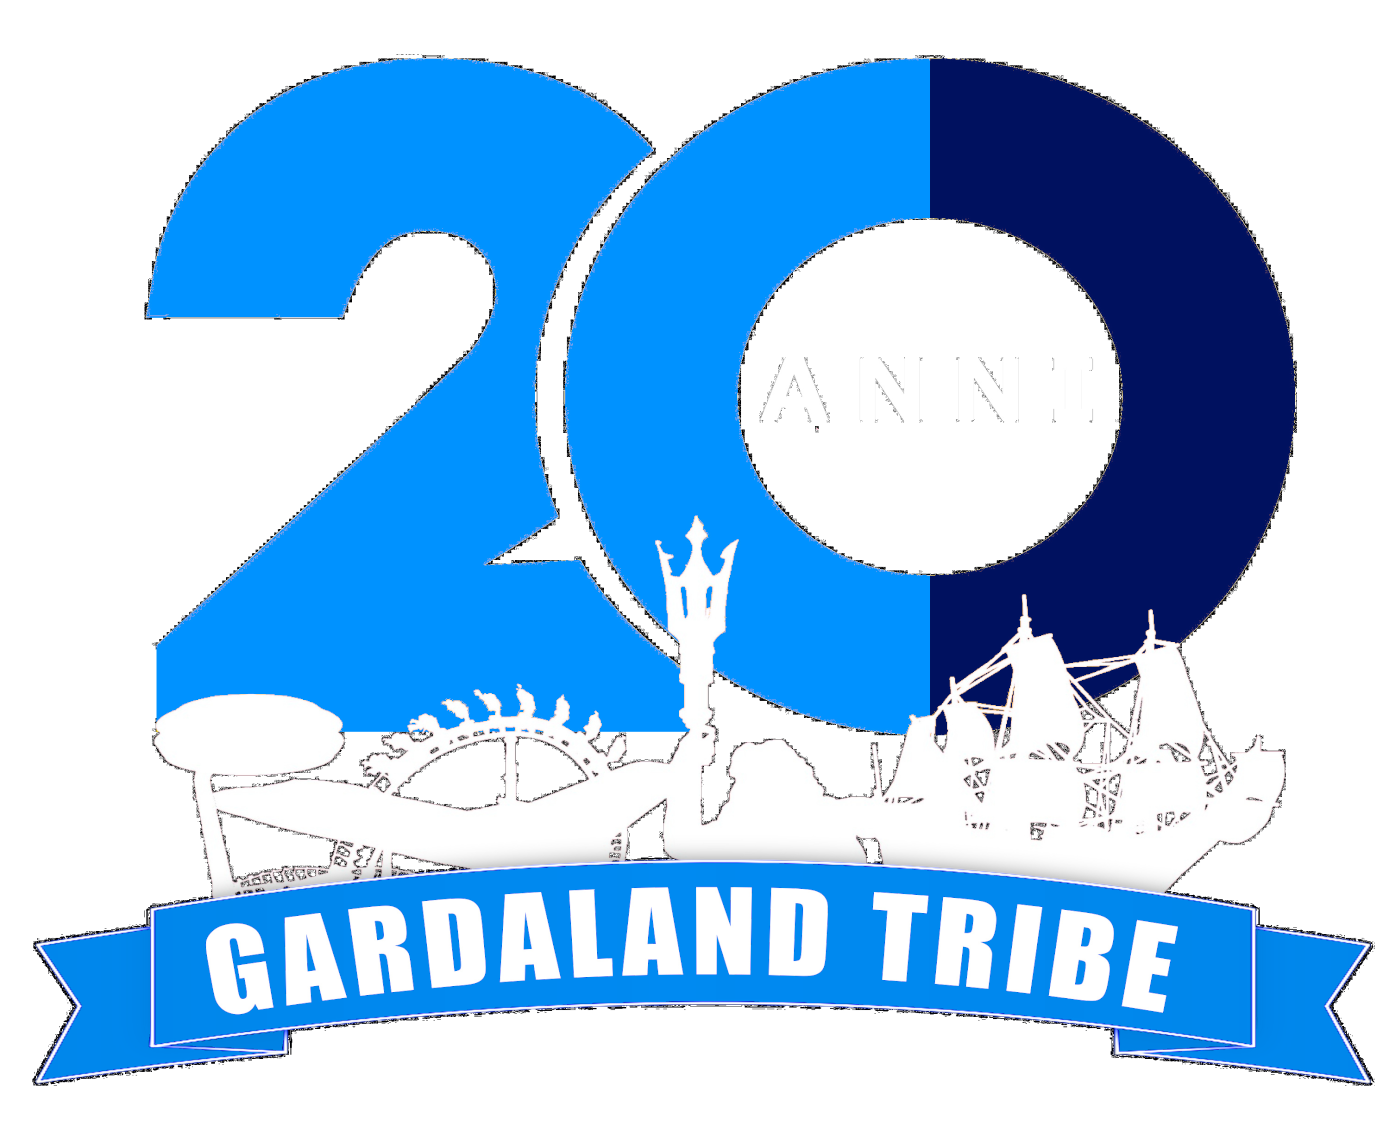 News - Gardaland Tribe